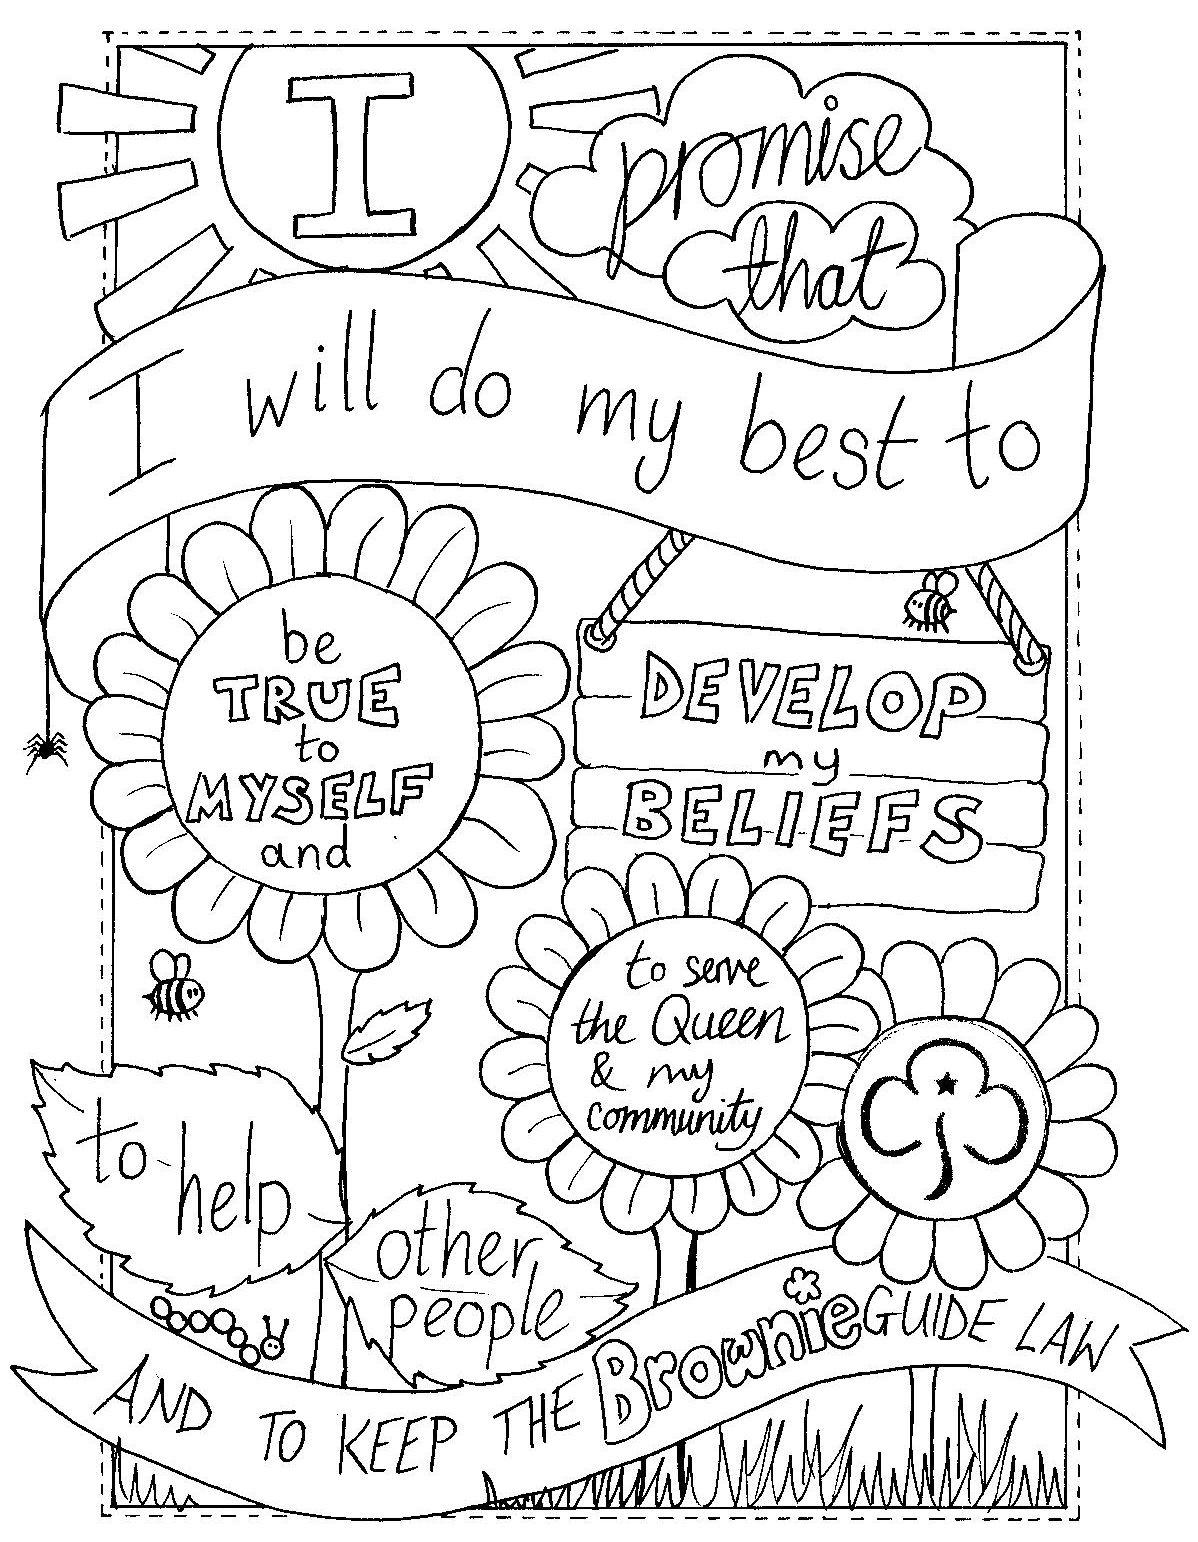 girl scout brownie coloring pages brownie girl scouts coloring pages coloring home pages girl coloring brownie scout